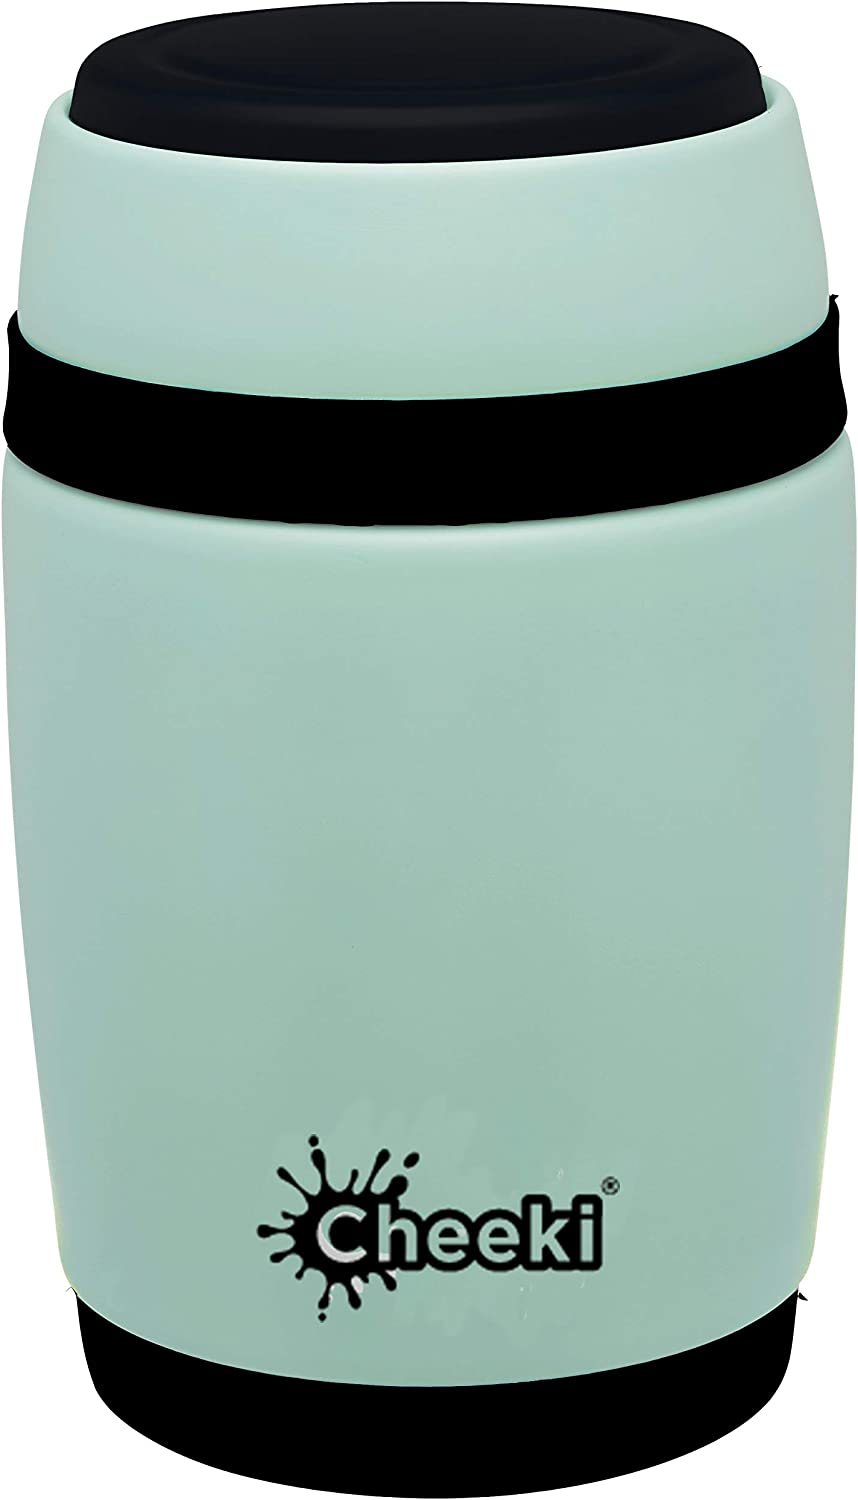 Cheeki Insulated Food Jar, Stainless Steel Thermal Food Container (480 ml/16 oz); Vacuum Insulated Hot Food Flask, BPA-Free Spill-Proof Metal Lunch Jar, Reusable Portable Hot and Cold Food Container